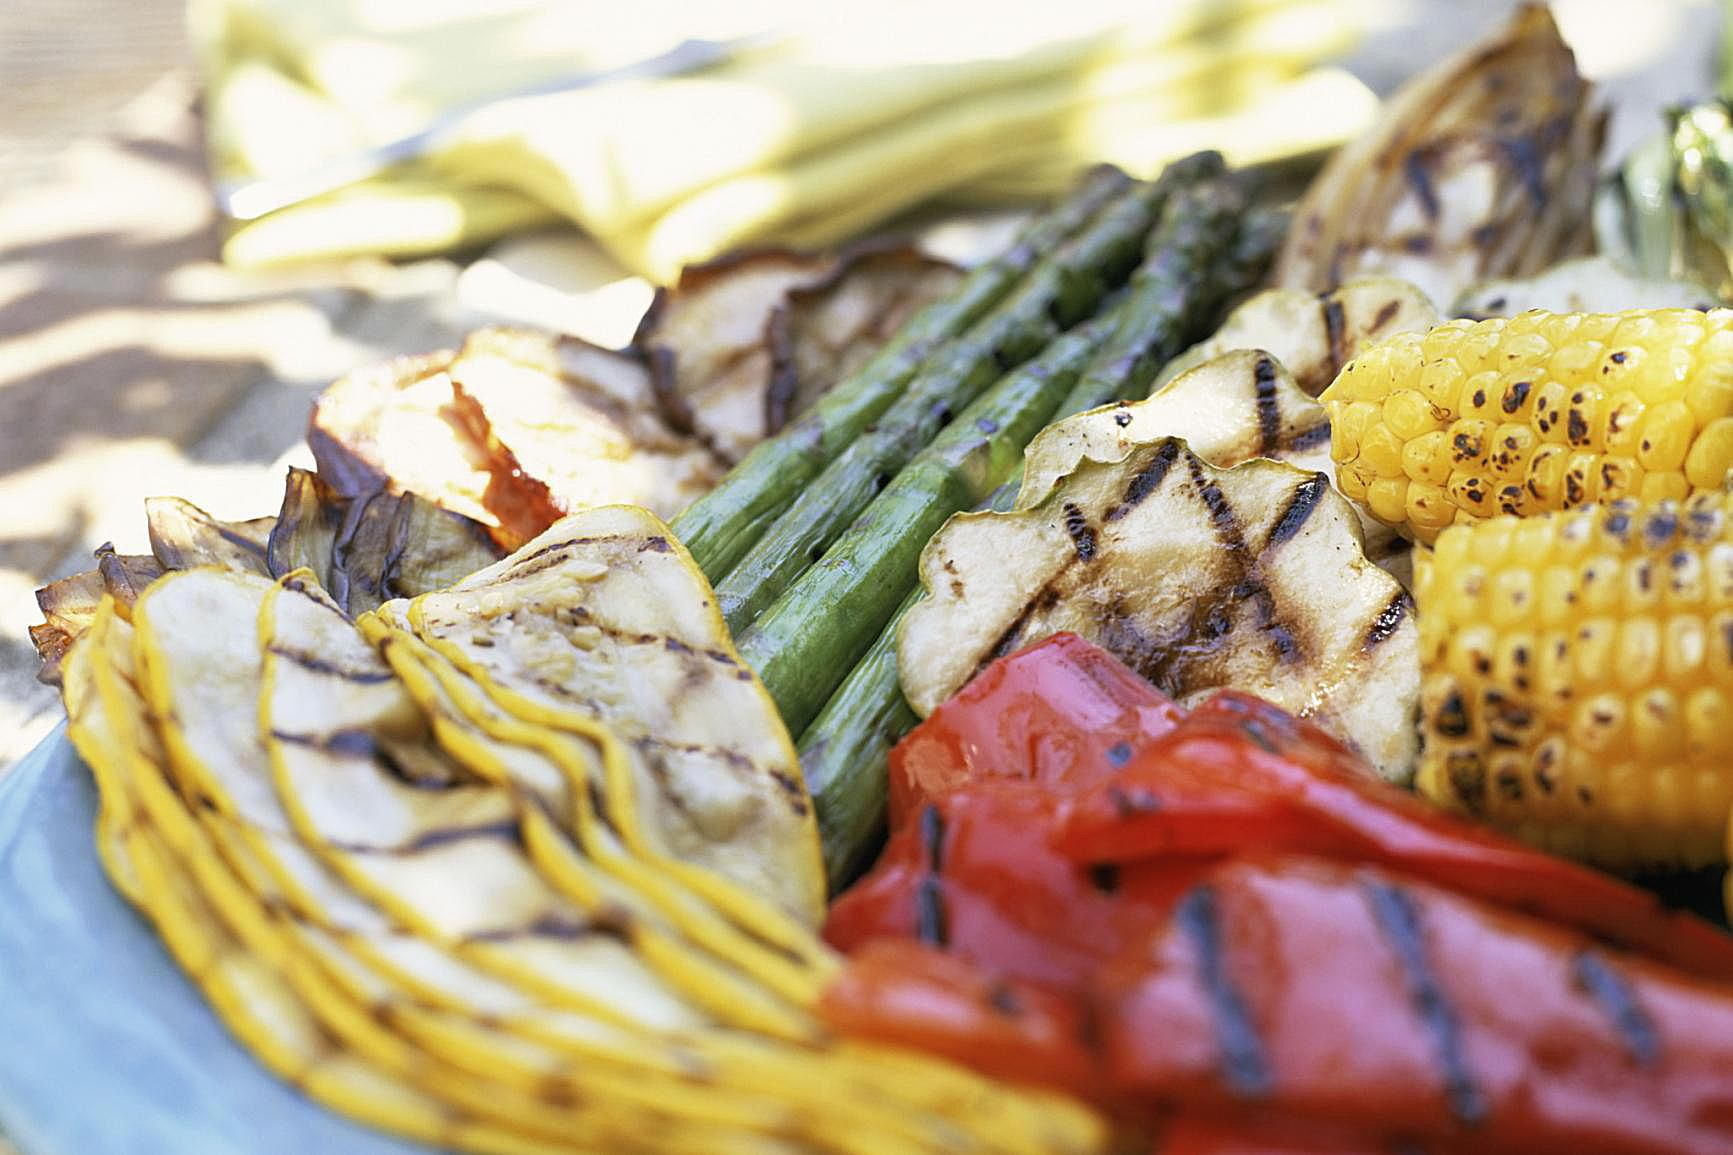 Vegetable Grilling Guide